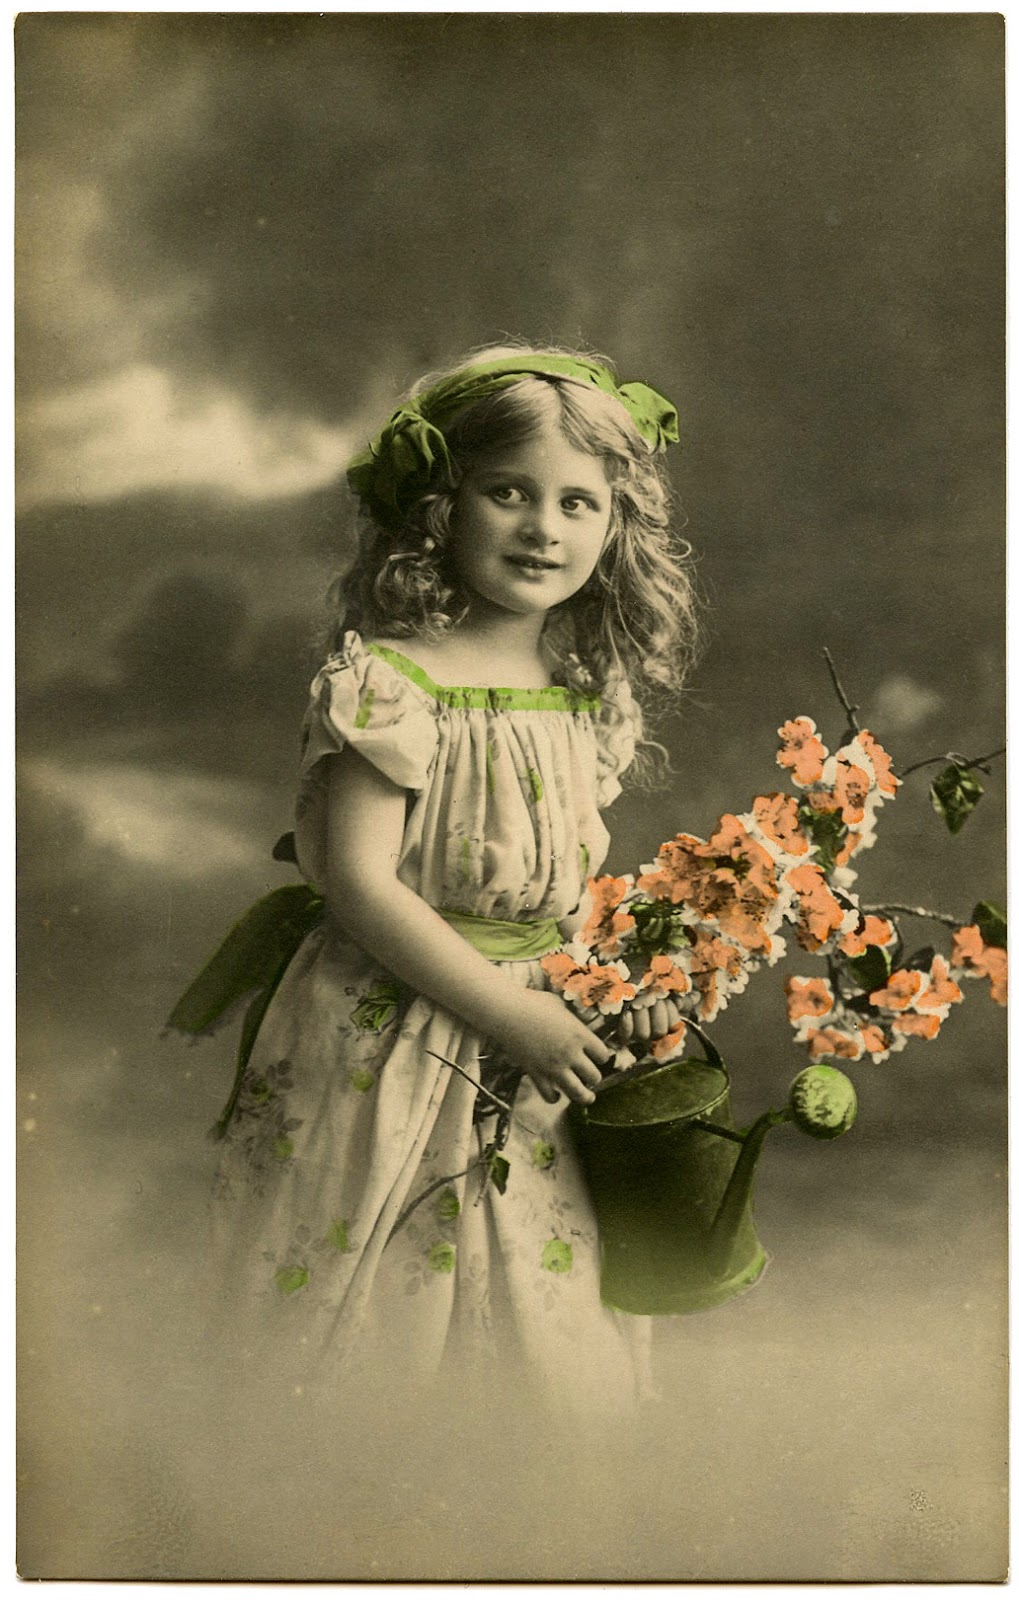 Old French Photo - Sweet Snowy Girl - The Graphics Fairy